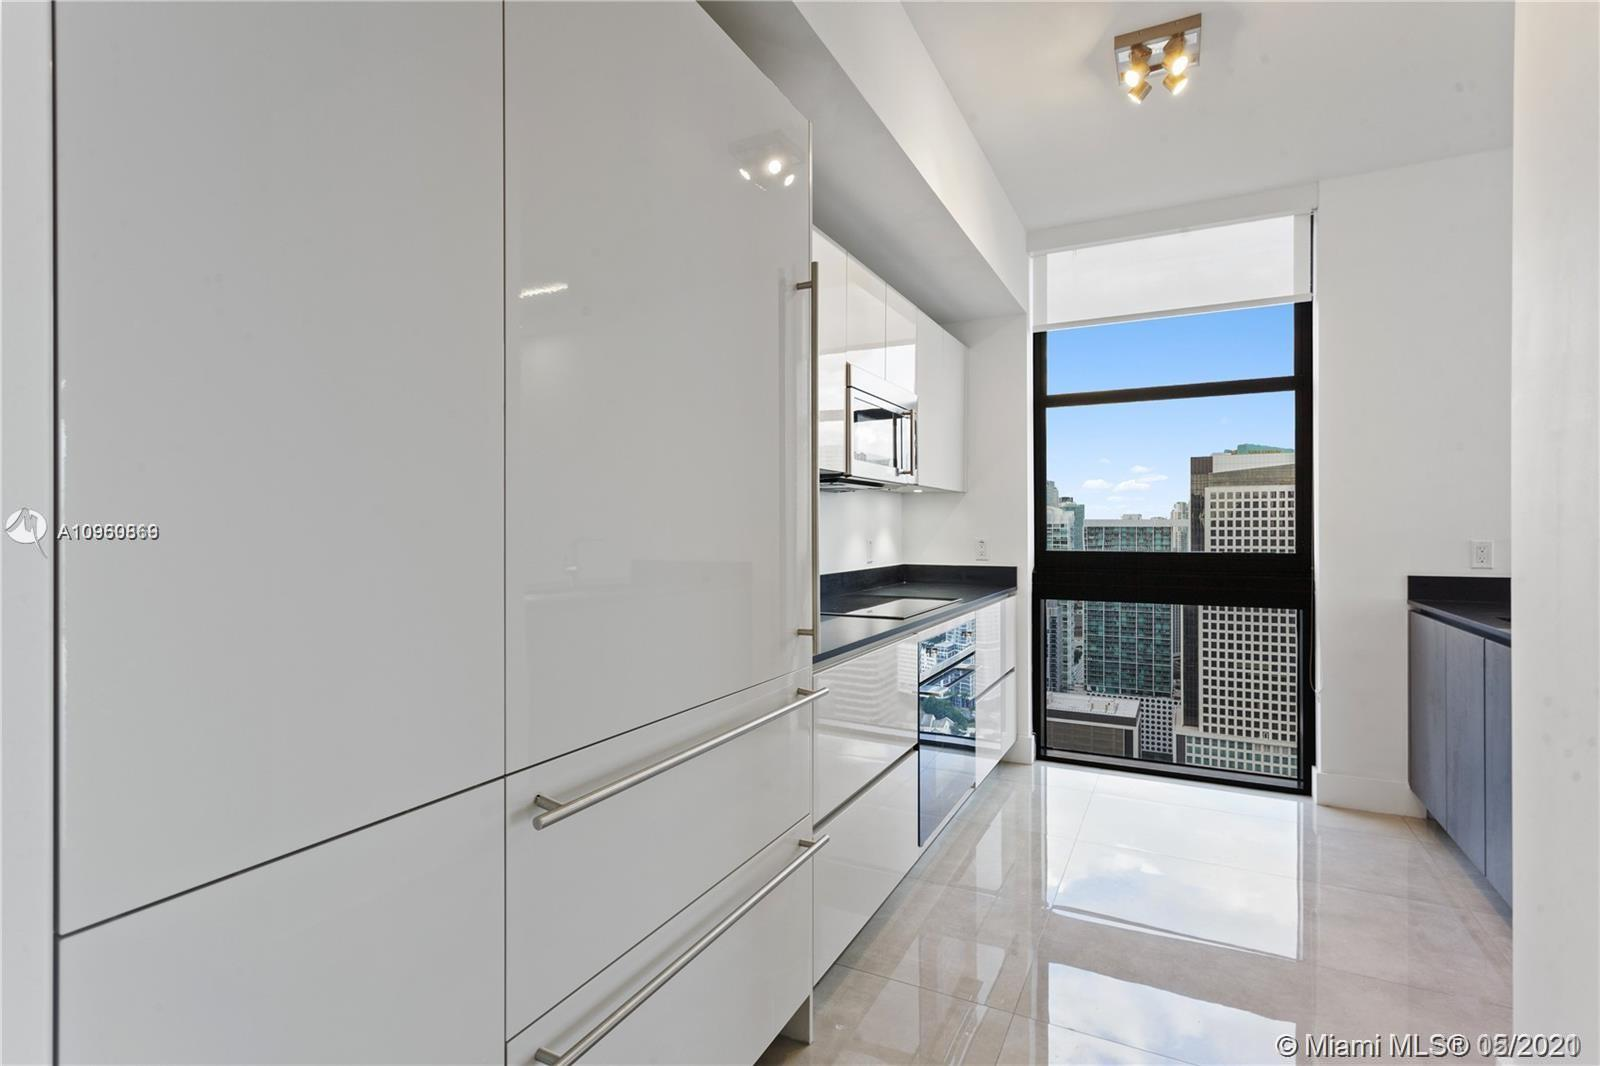 1010 Brickell Ave # 3401, Miami, Florida 33131, 3 Bedrooms Bedrooms, ,3 BathroomsBathrooms,Residential,For Sale,1010 Brickell Ave # 3401,A10960869